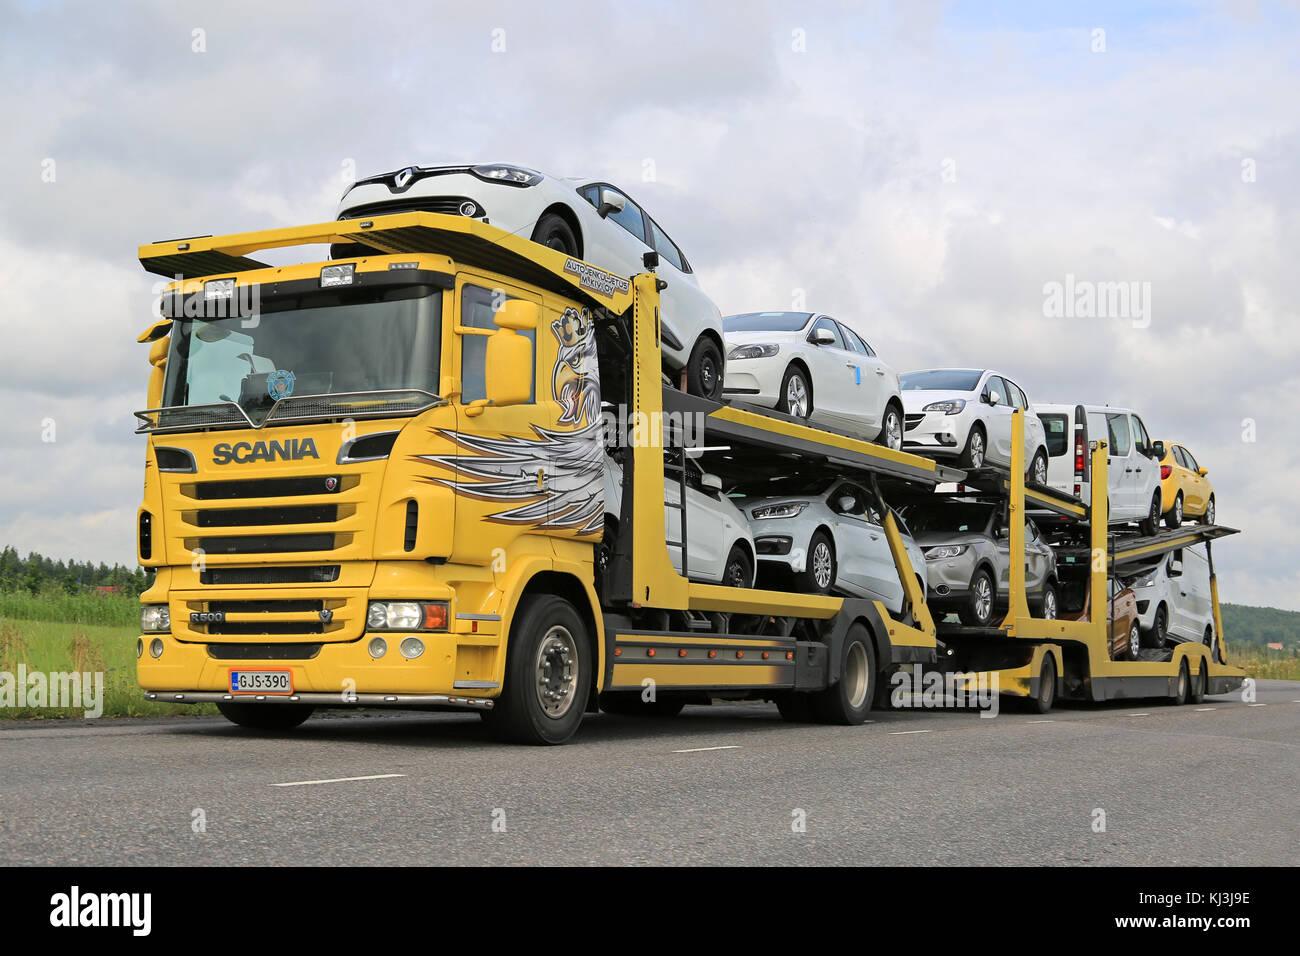 SALO, FINLAND - JULY 26, 2015: Scania R500 car carrier hauls new cars along road. A scrapping scheme for old vehicles Stock Photo